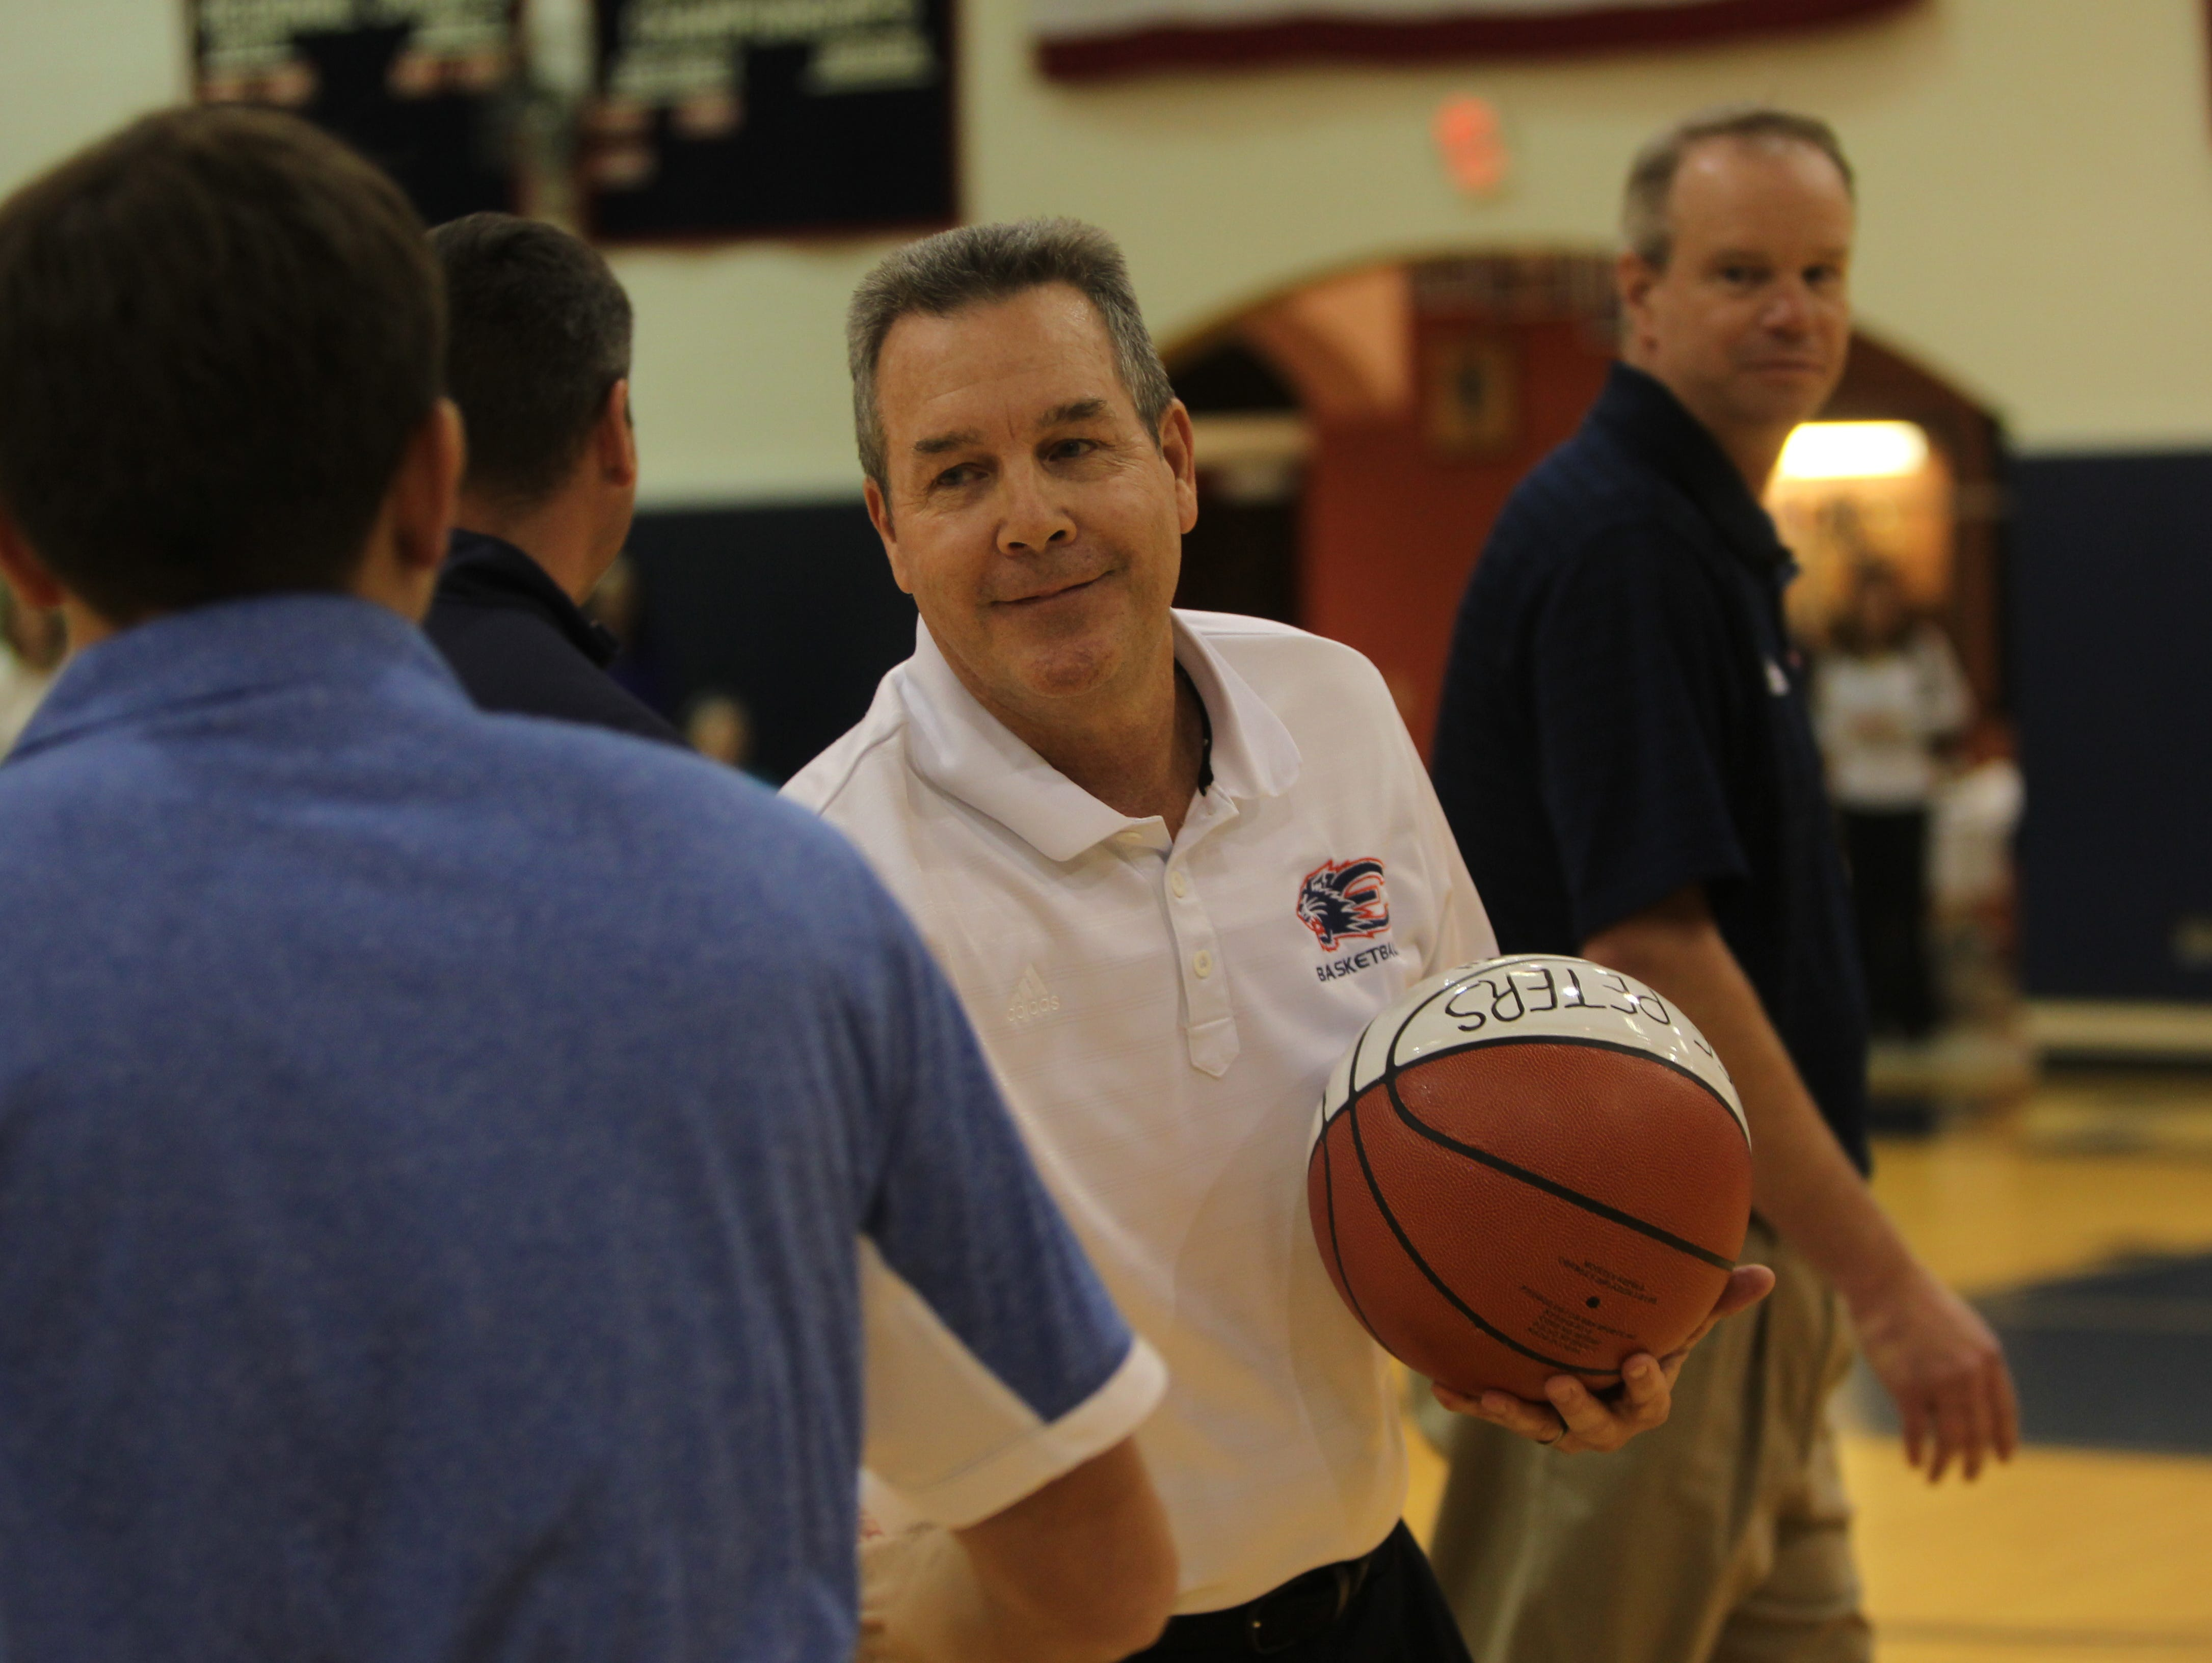 Estero boys basketball coach Lee Peters, center, gets a handshake from Canterbury Coach Darrin Wallace during a ceremony to honor Peters for his 500th career win Wednesday in Estero.